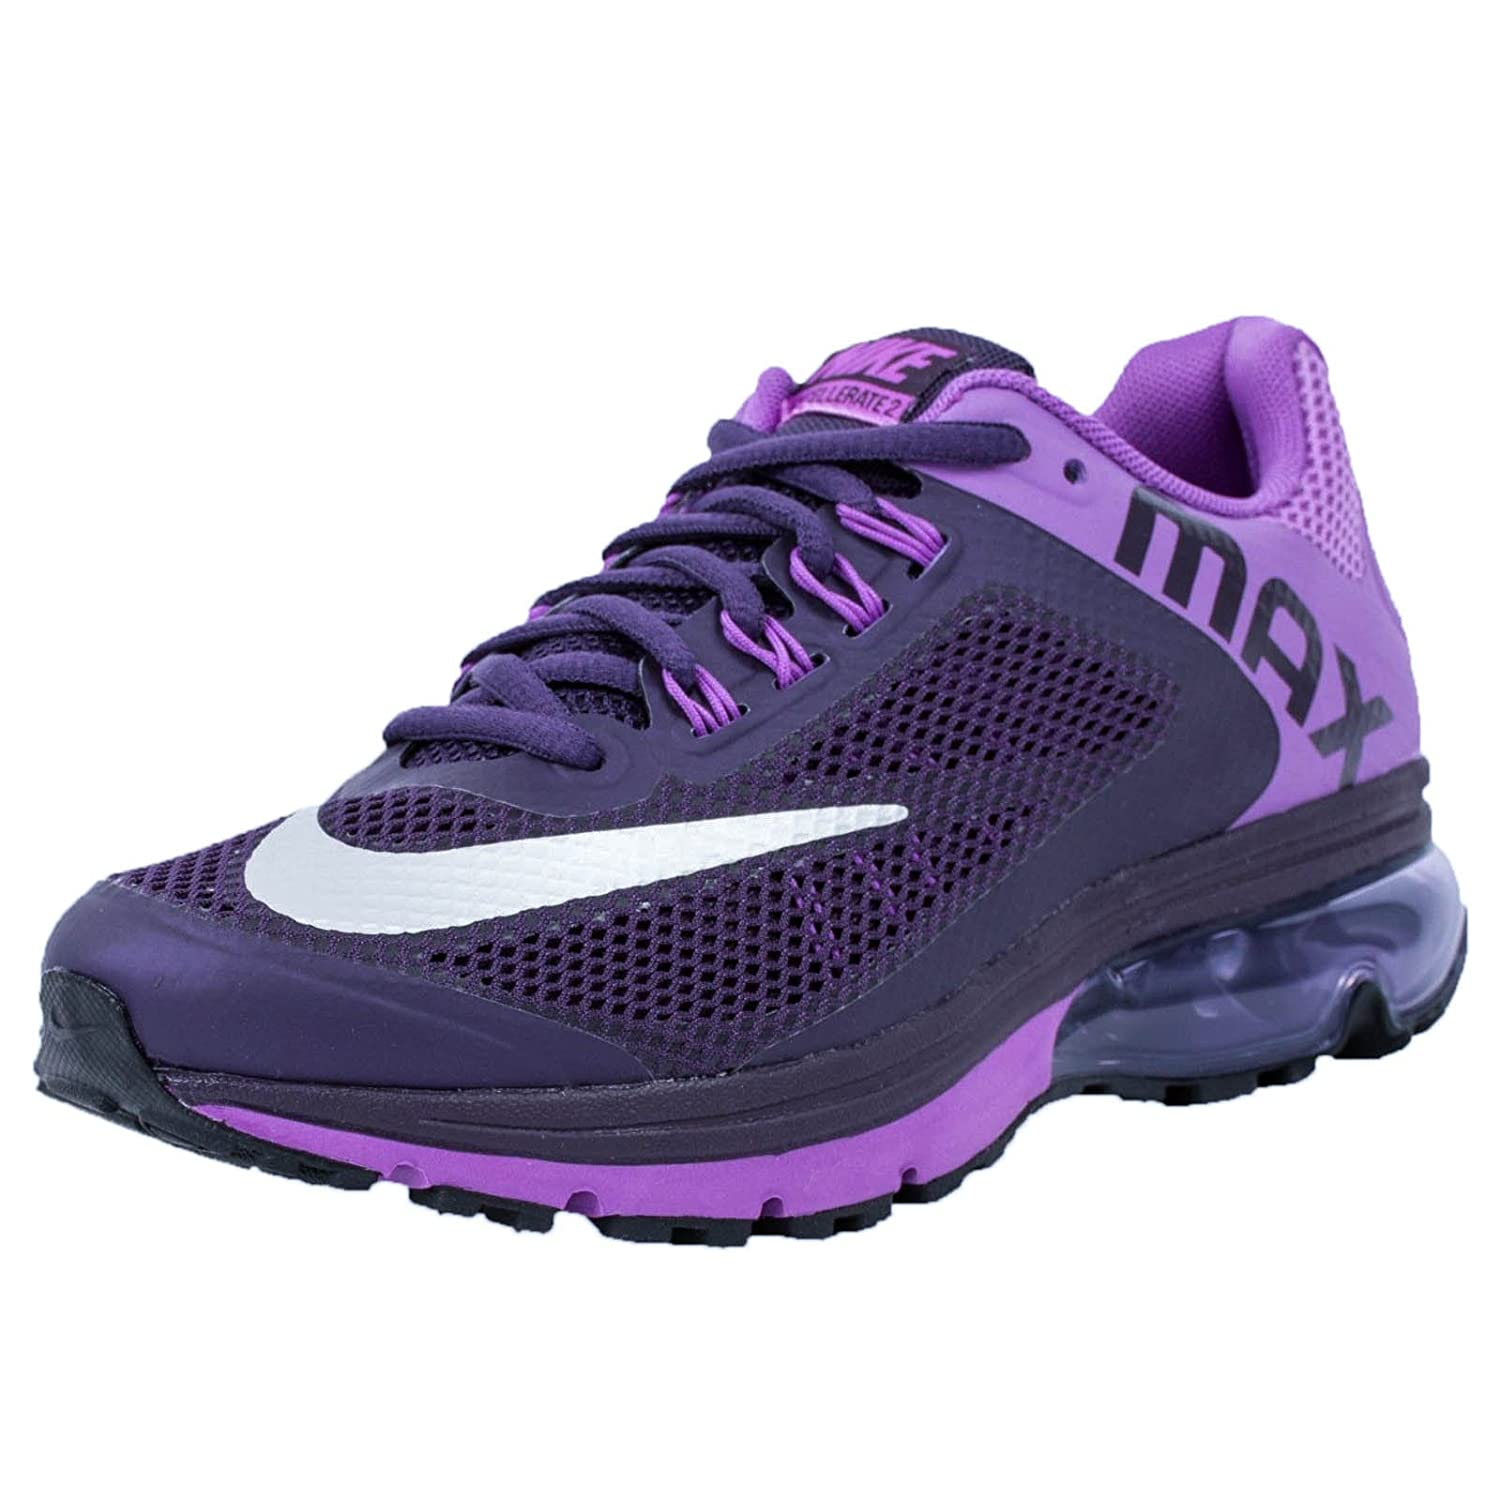 best service e4755 64512 Nike WMNS AIR MAX EXCELLERATE 2 RUNNING SHOES GROUND PURPLE 555764 505 SIZE  6 Amazon.ca Shoes  Handbags